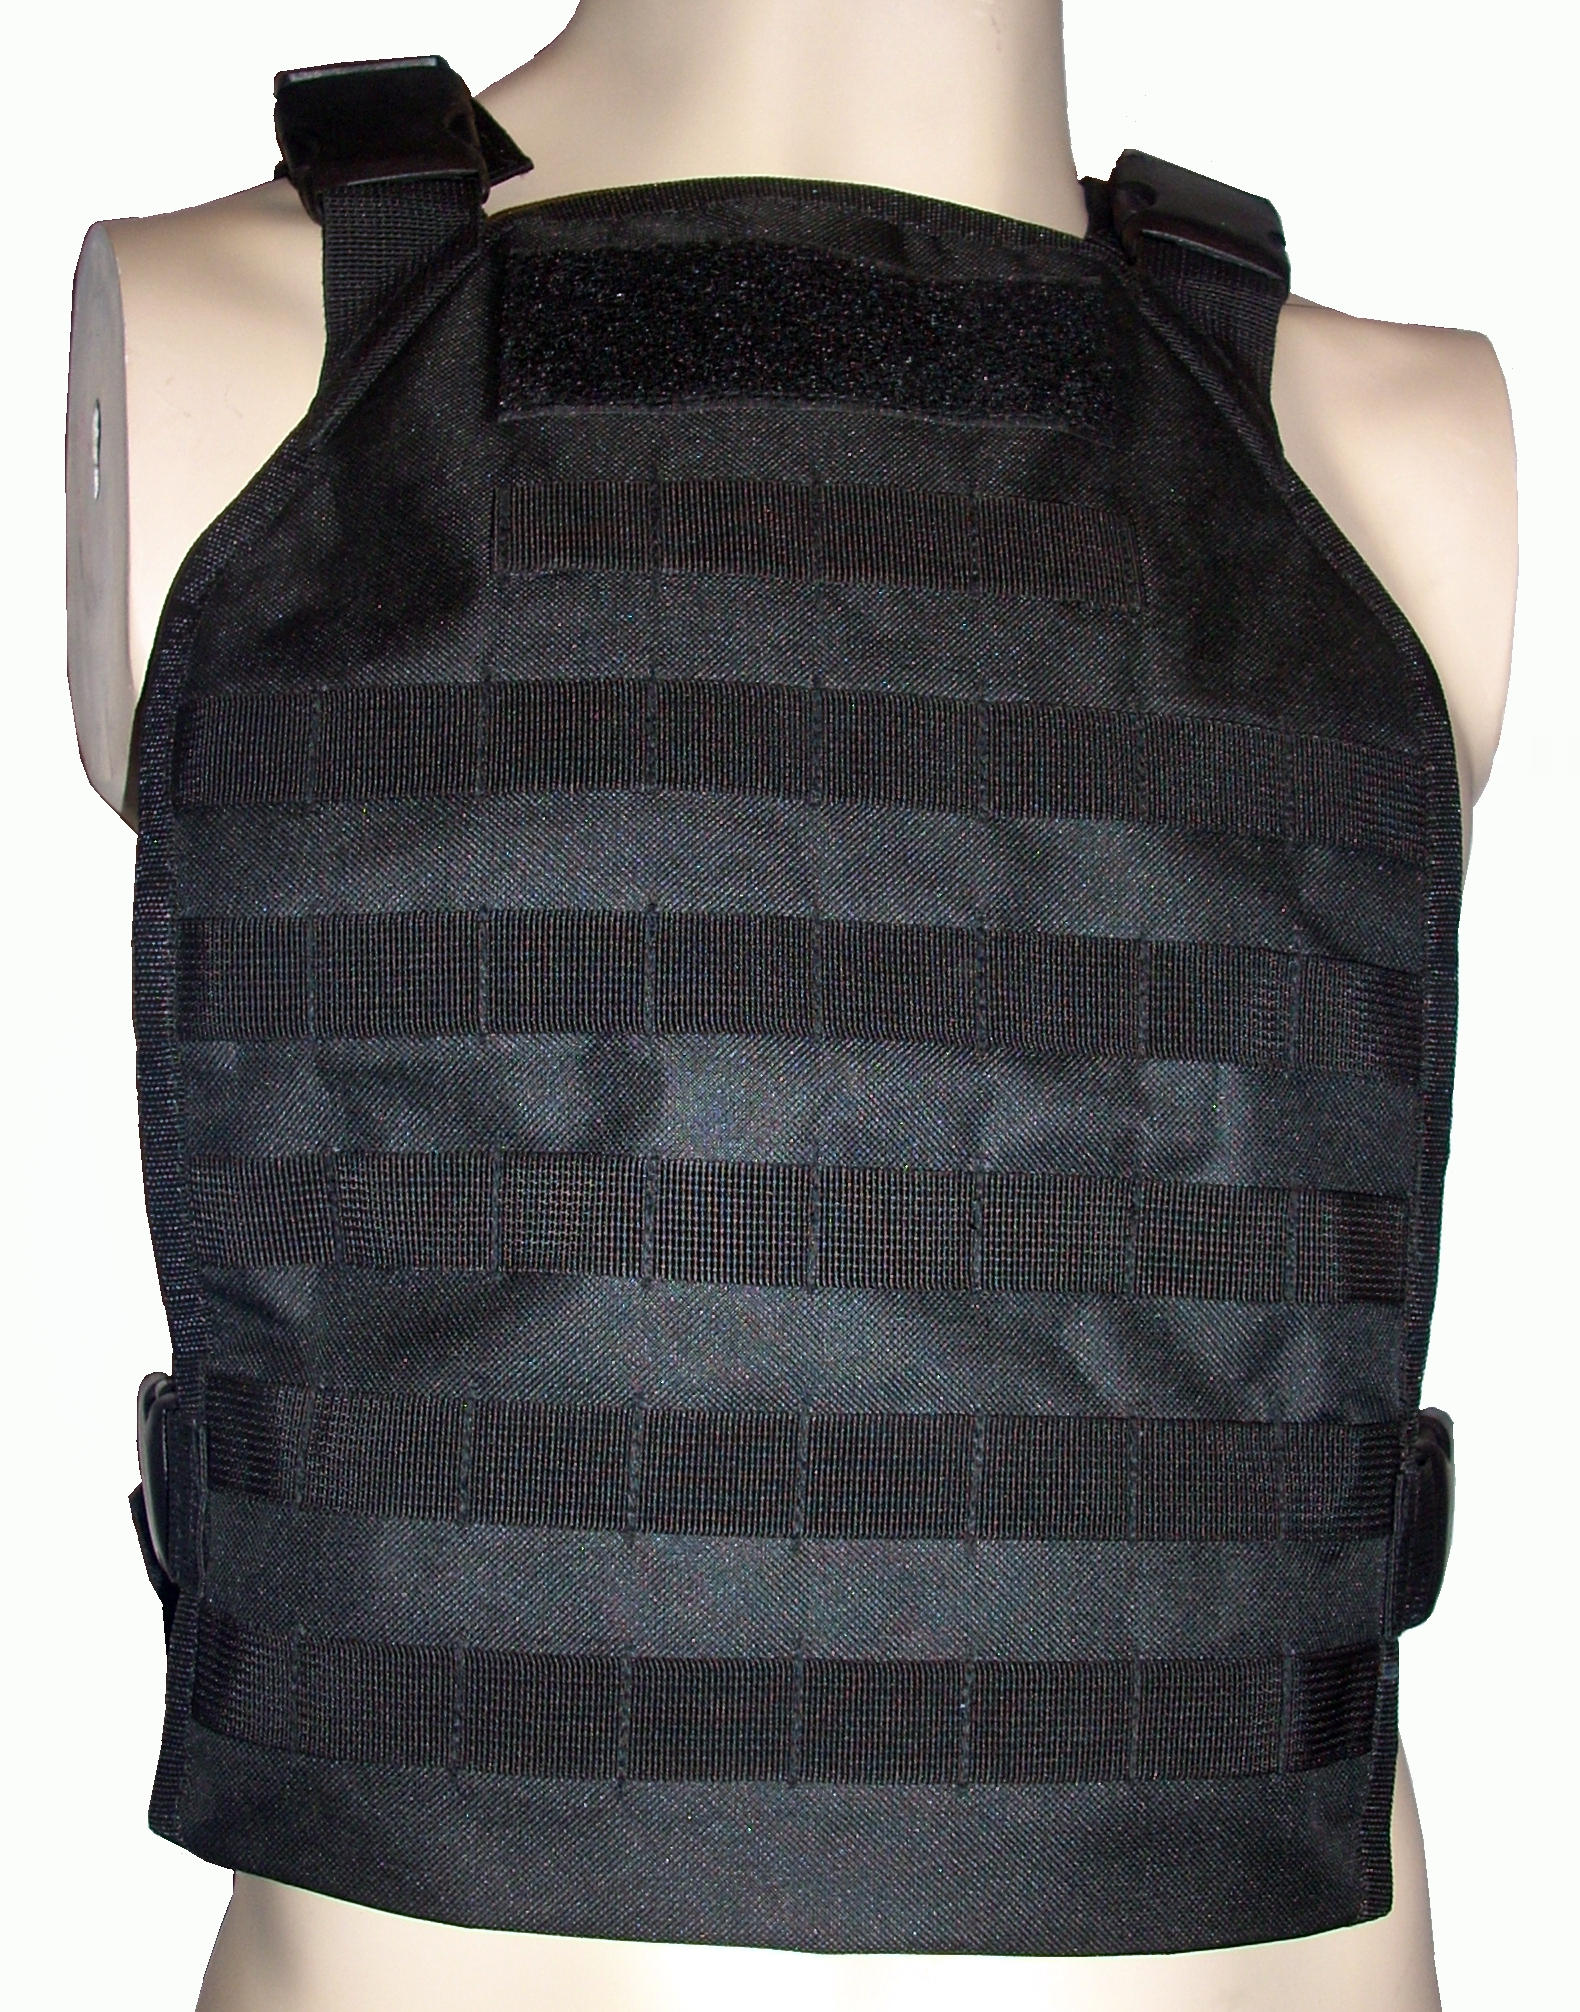 LW platecarrier black front